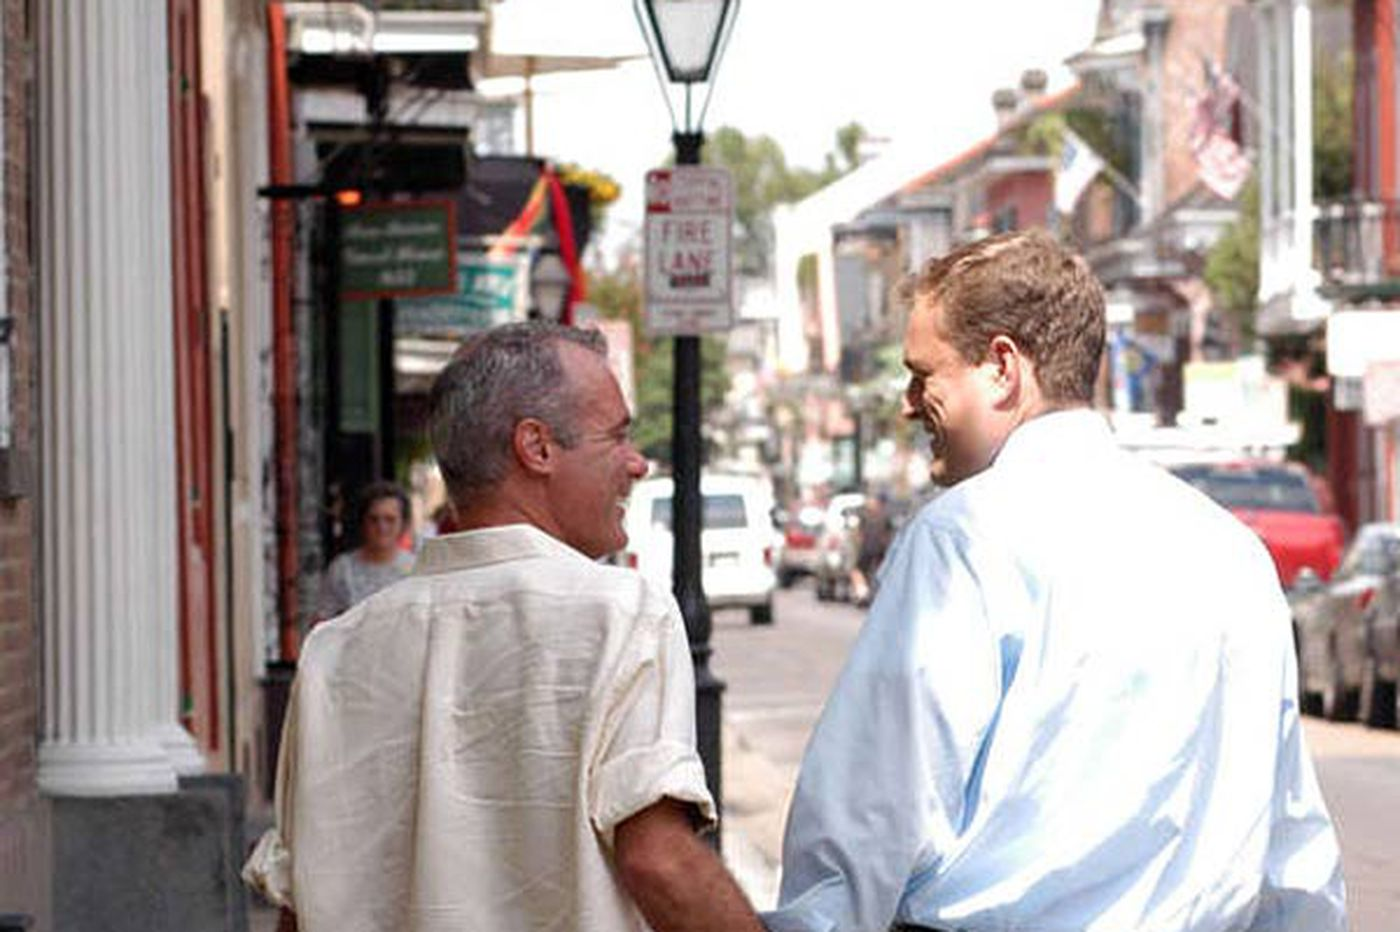 New Orleans promoted as a gay honeymoon haven